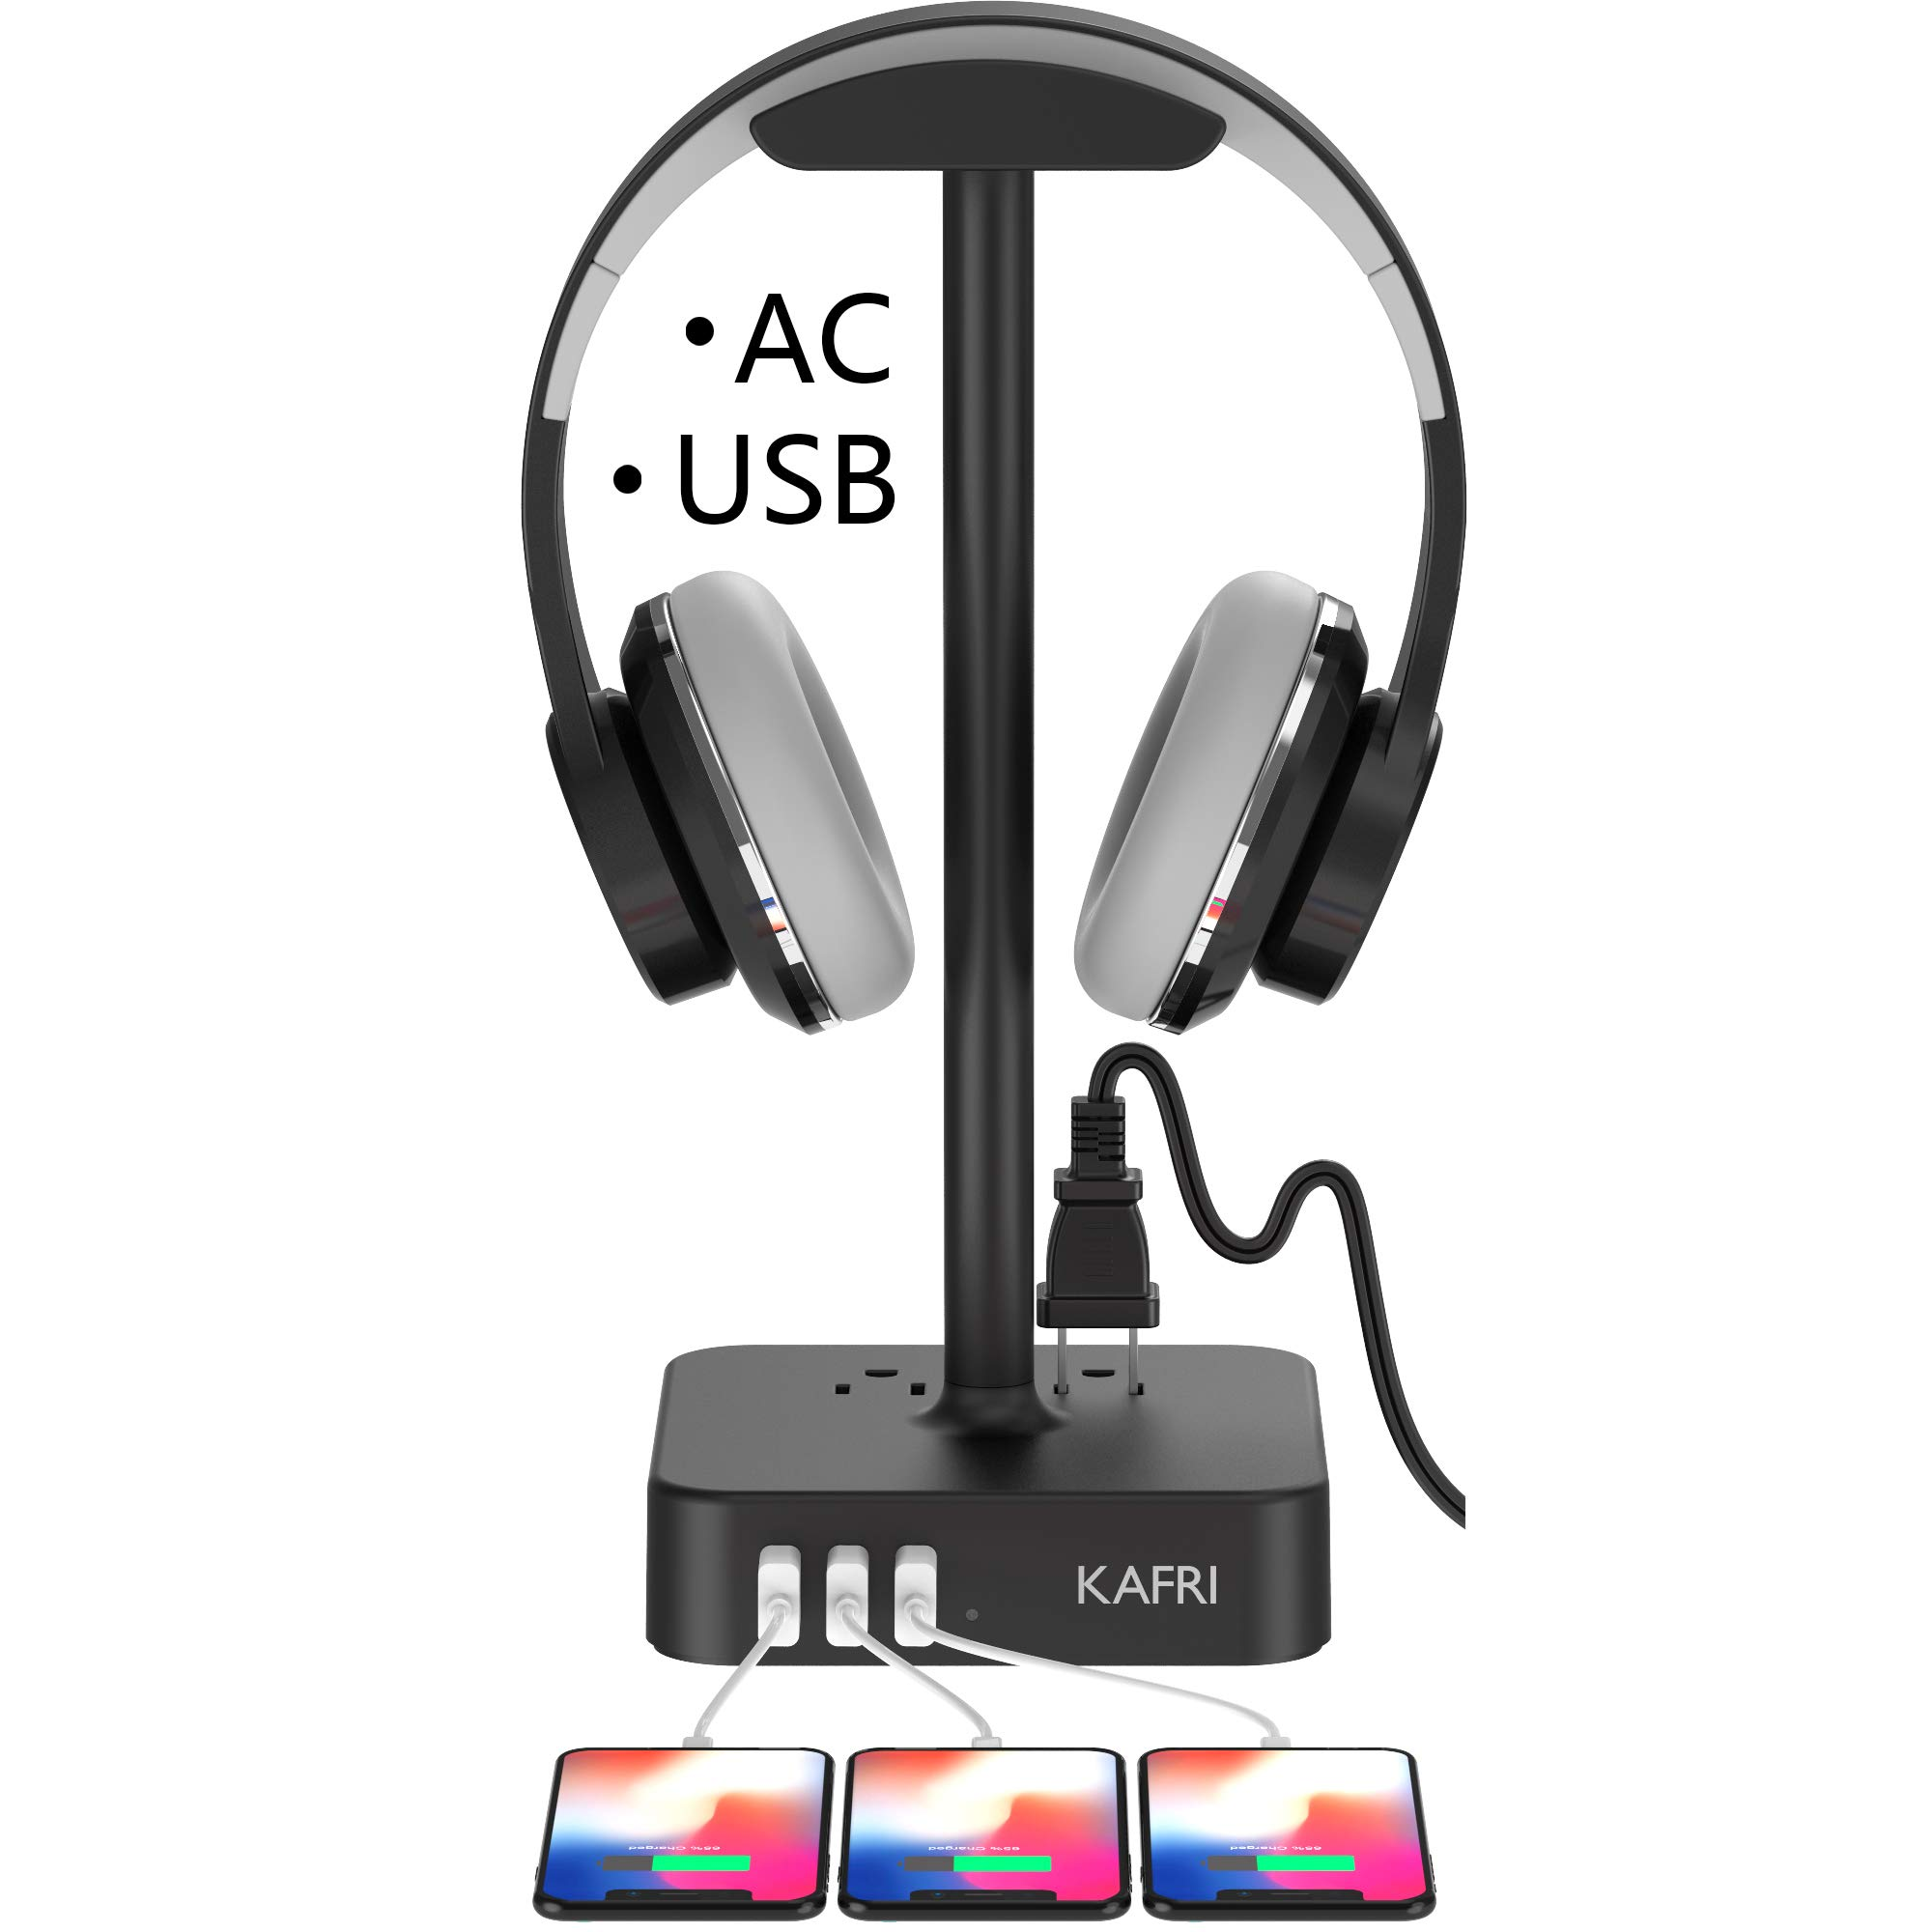 KAFRI Headphone Stand with USB Charger Desk Gaming Headset Holder Hanger Rack with 3 USB Charging Port and 2 AC Outlet - Suitable for Gamer Desktop Table Wireless Earphone Accessories Boyfriend Gift